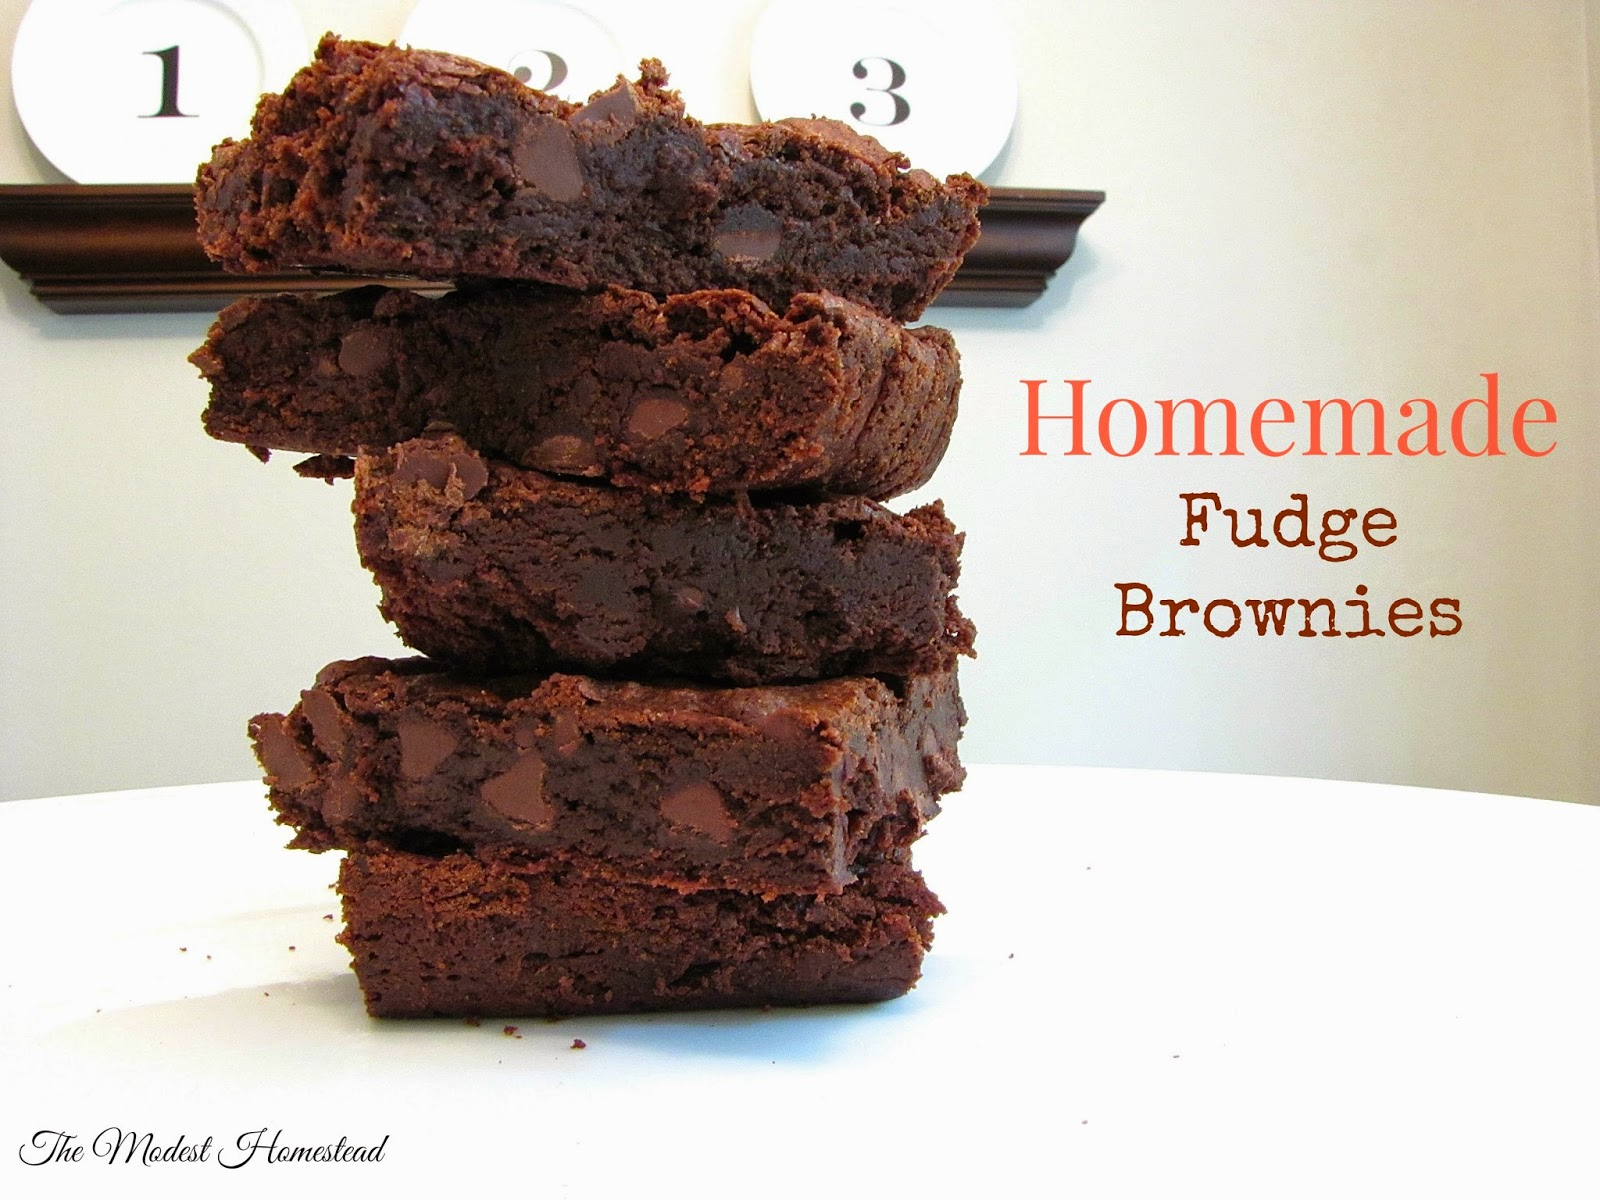 The Modest Homestead: The best homemade fudge brownies